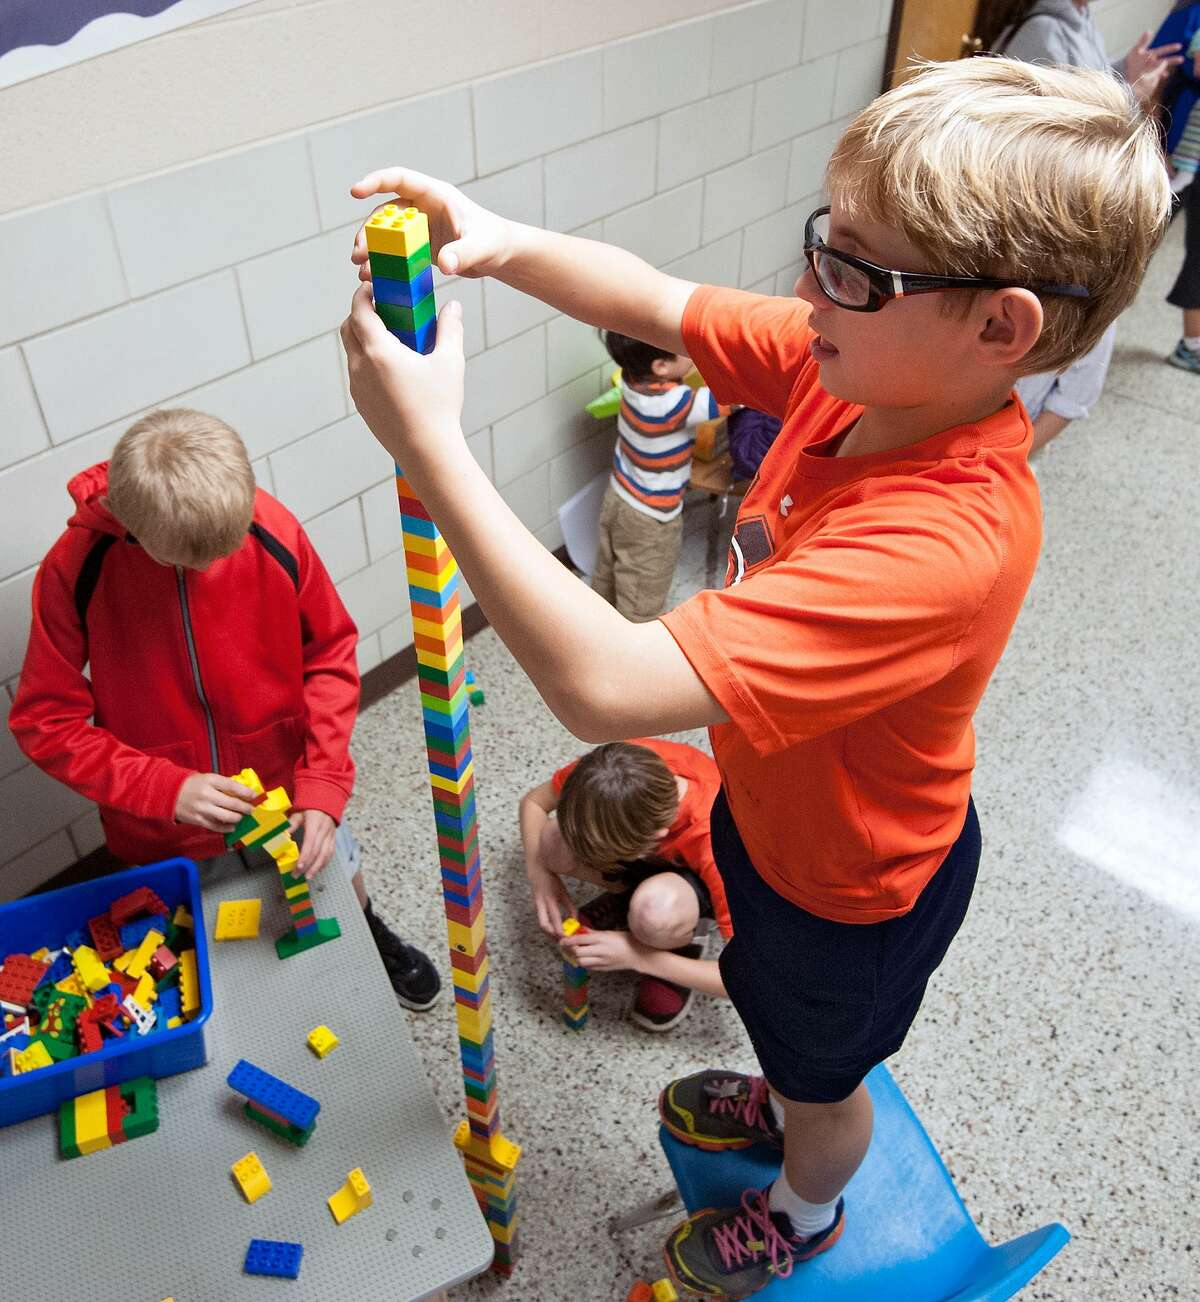 Jax Lassiter, 11, of Bridgewater, precariously adds another Lego to his tower just moments before its collapse during STEAM night (Science, Technology, Engineering, Arts, and Mathematics) at John Wayland Elementary School in Bridgewater, Va., on Thursday night, Oct. 16, 2014. (AP Photo/The Daily News-Record, Jason Lenhart)